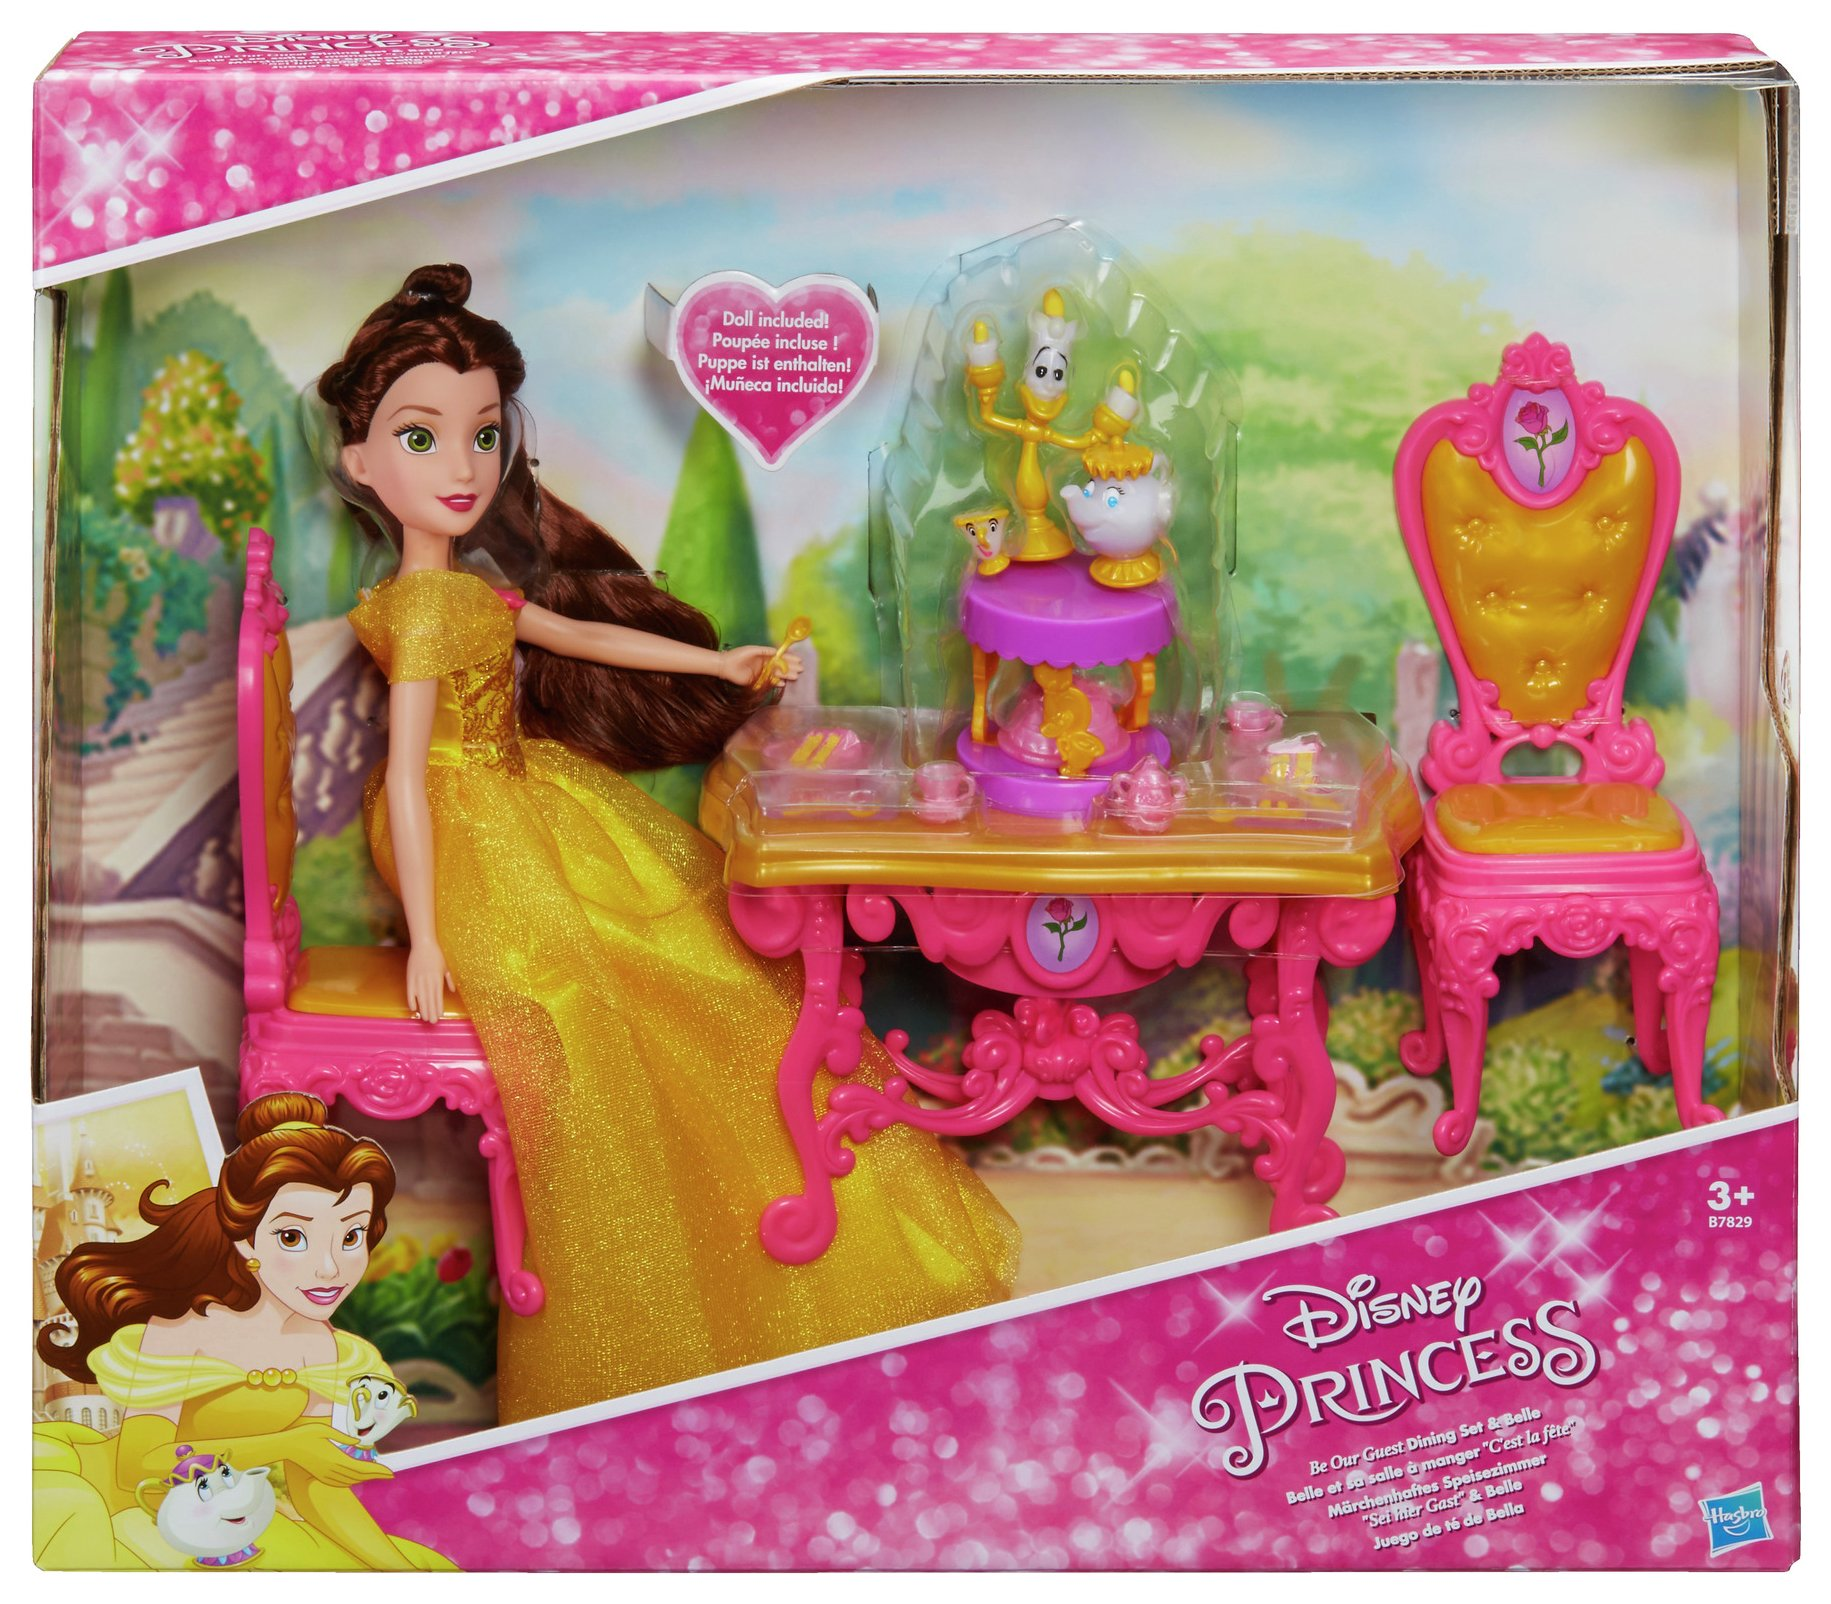 Disney Princess Be Our Guest Dining Set Belle Doll